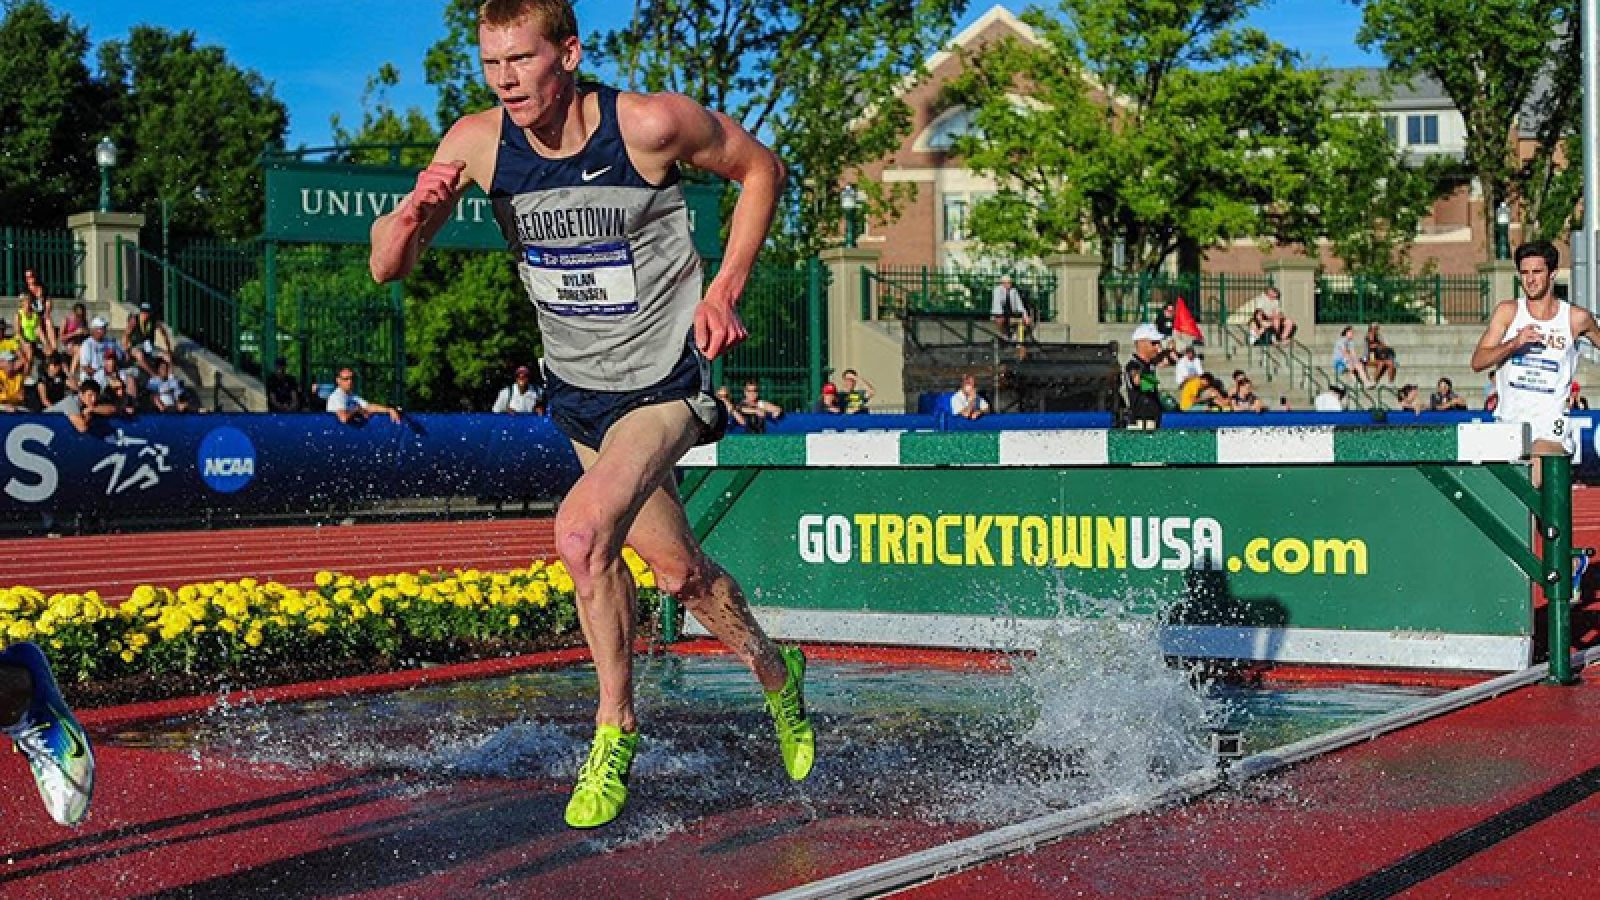 Dylan Sorensen runs on a track outside. Photograph by Michael Scott